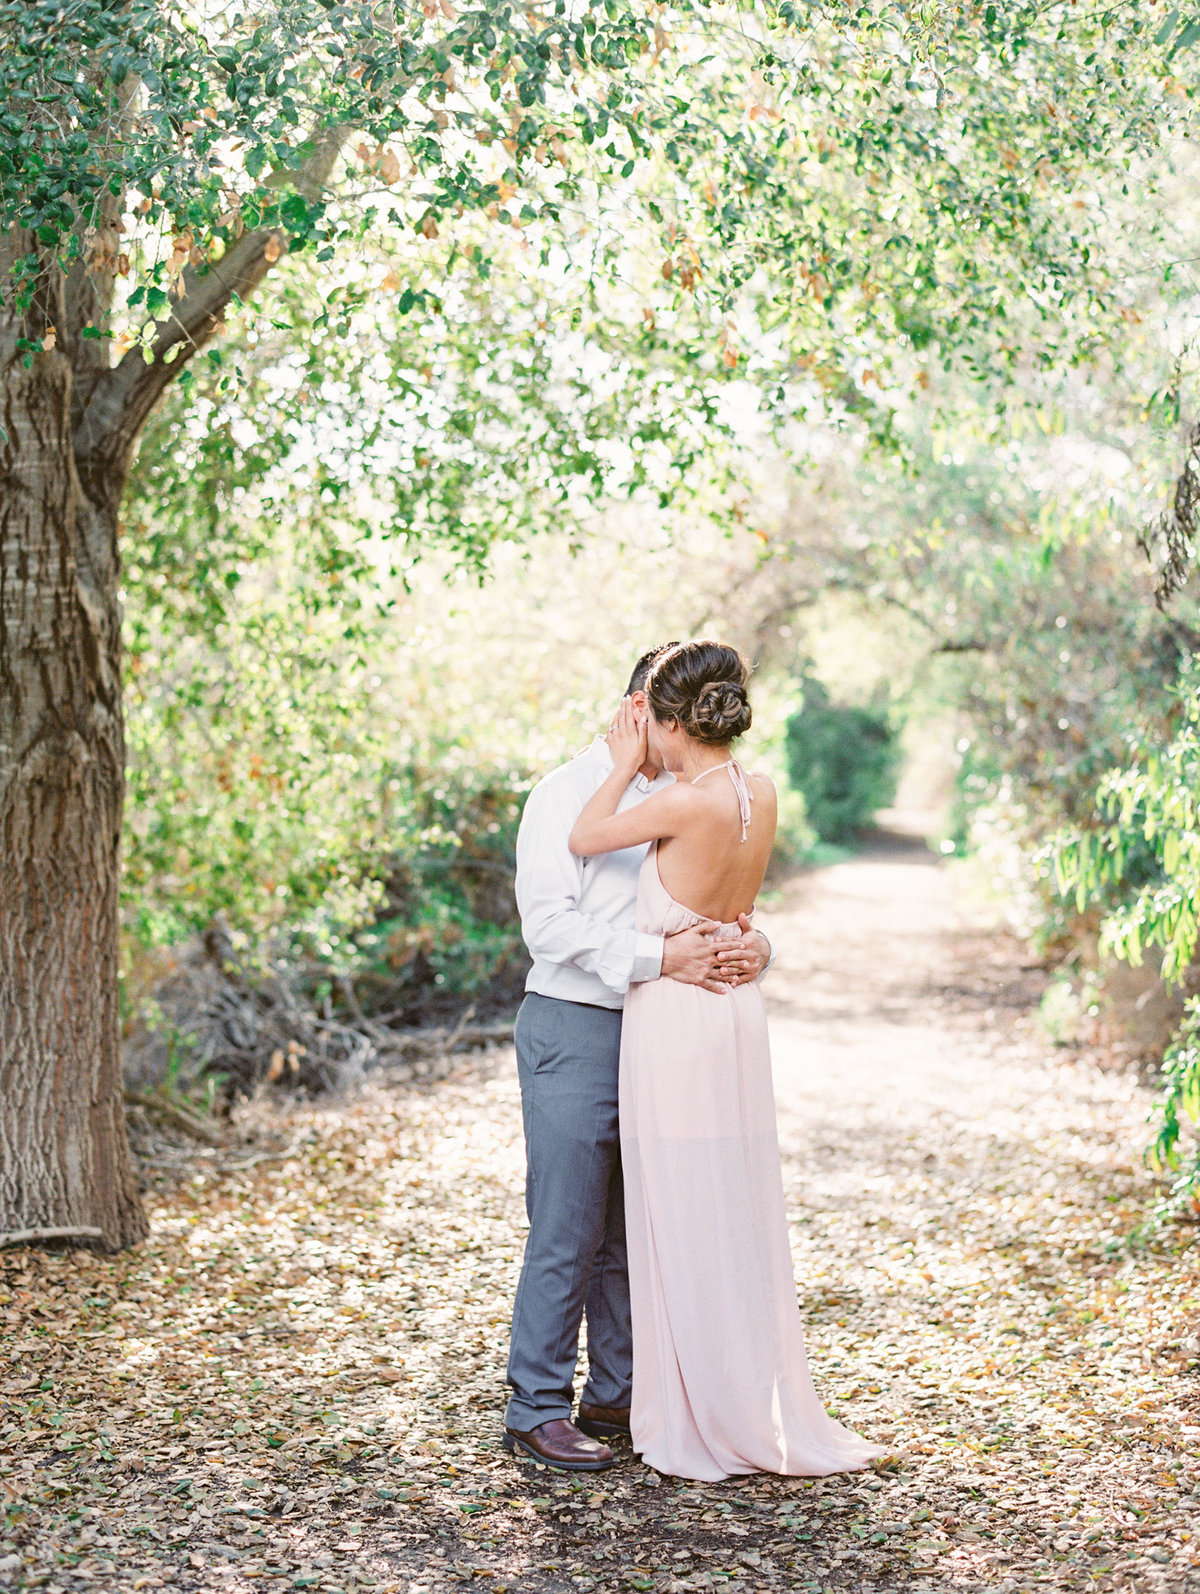 Babsie-Ly-Photography-Film-Engagement-at-the-park-nature-Orange-County-San-Diego-Stephanie-Tony-002